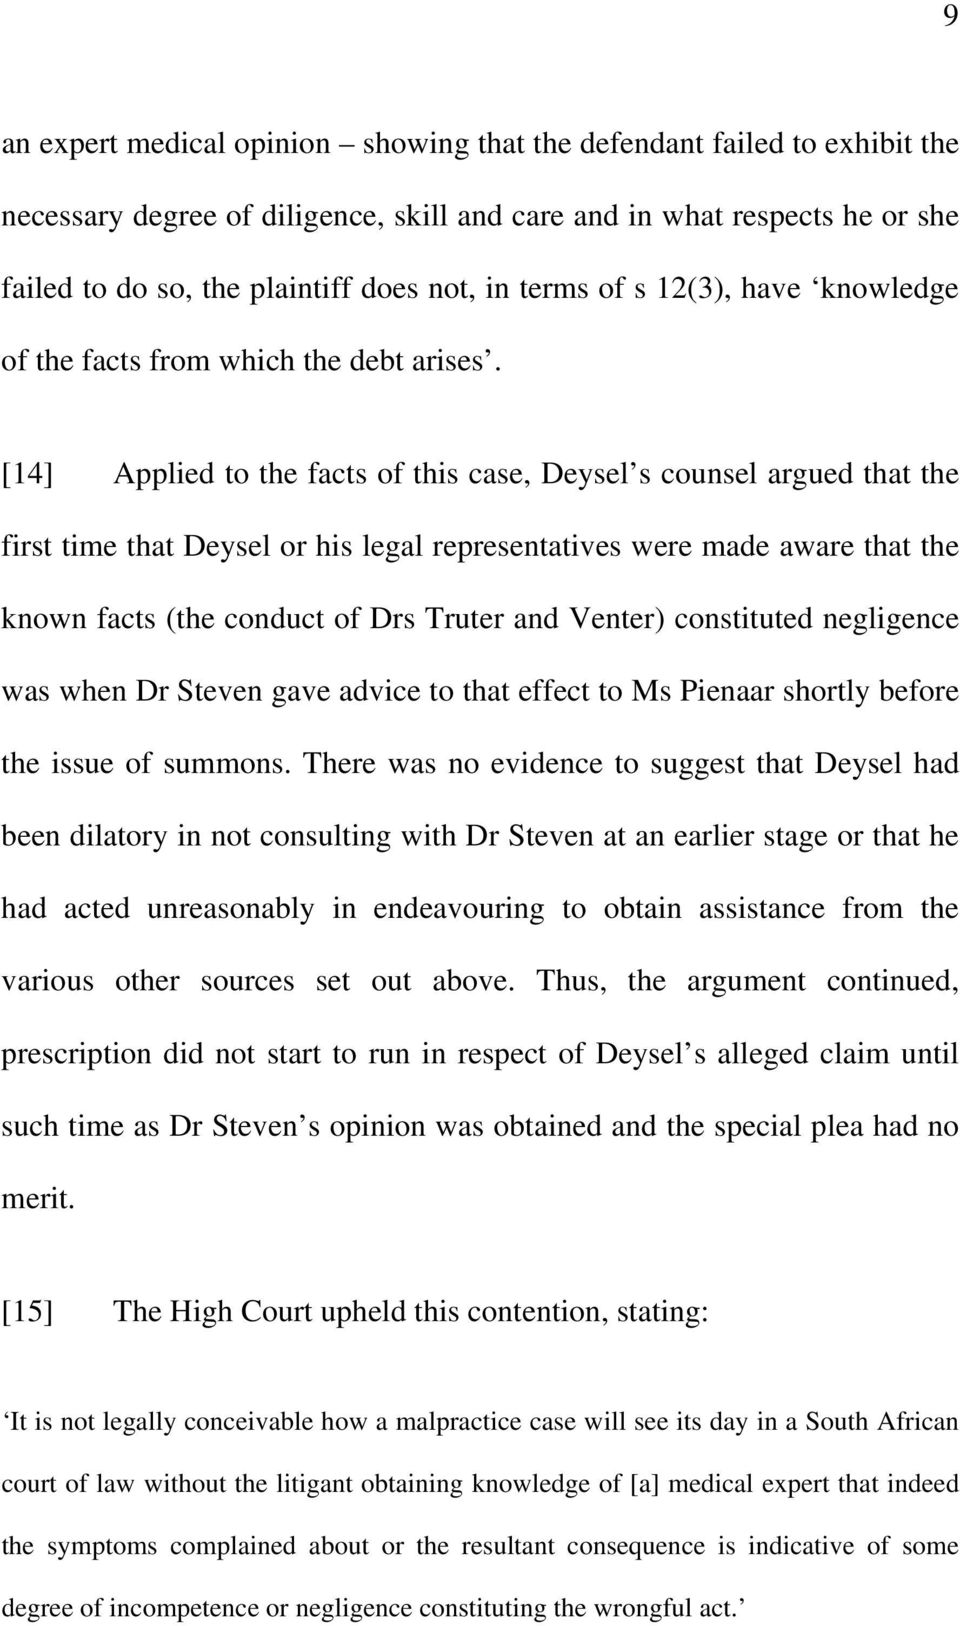 [14] Applied to the facts of this case, Deysel s counsel argued that the first time that Deysel or his legal representatives were made aware that the known facts (the conduct of Drs Truter and